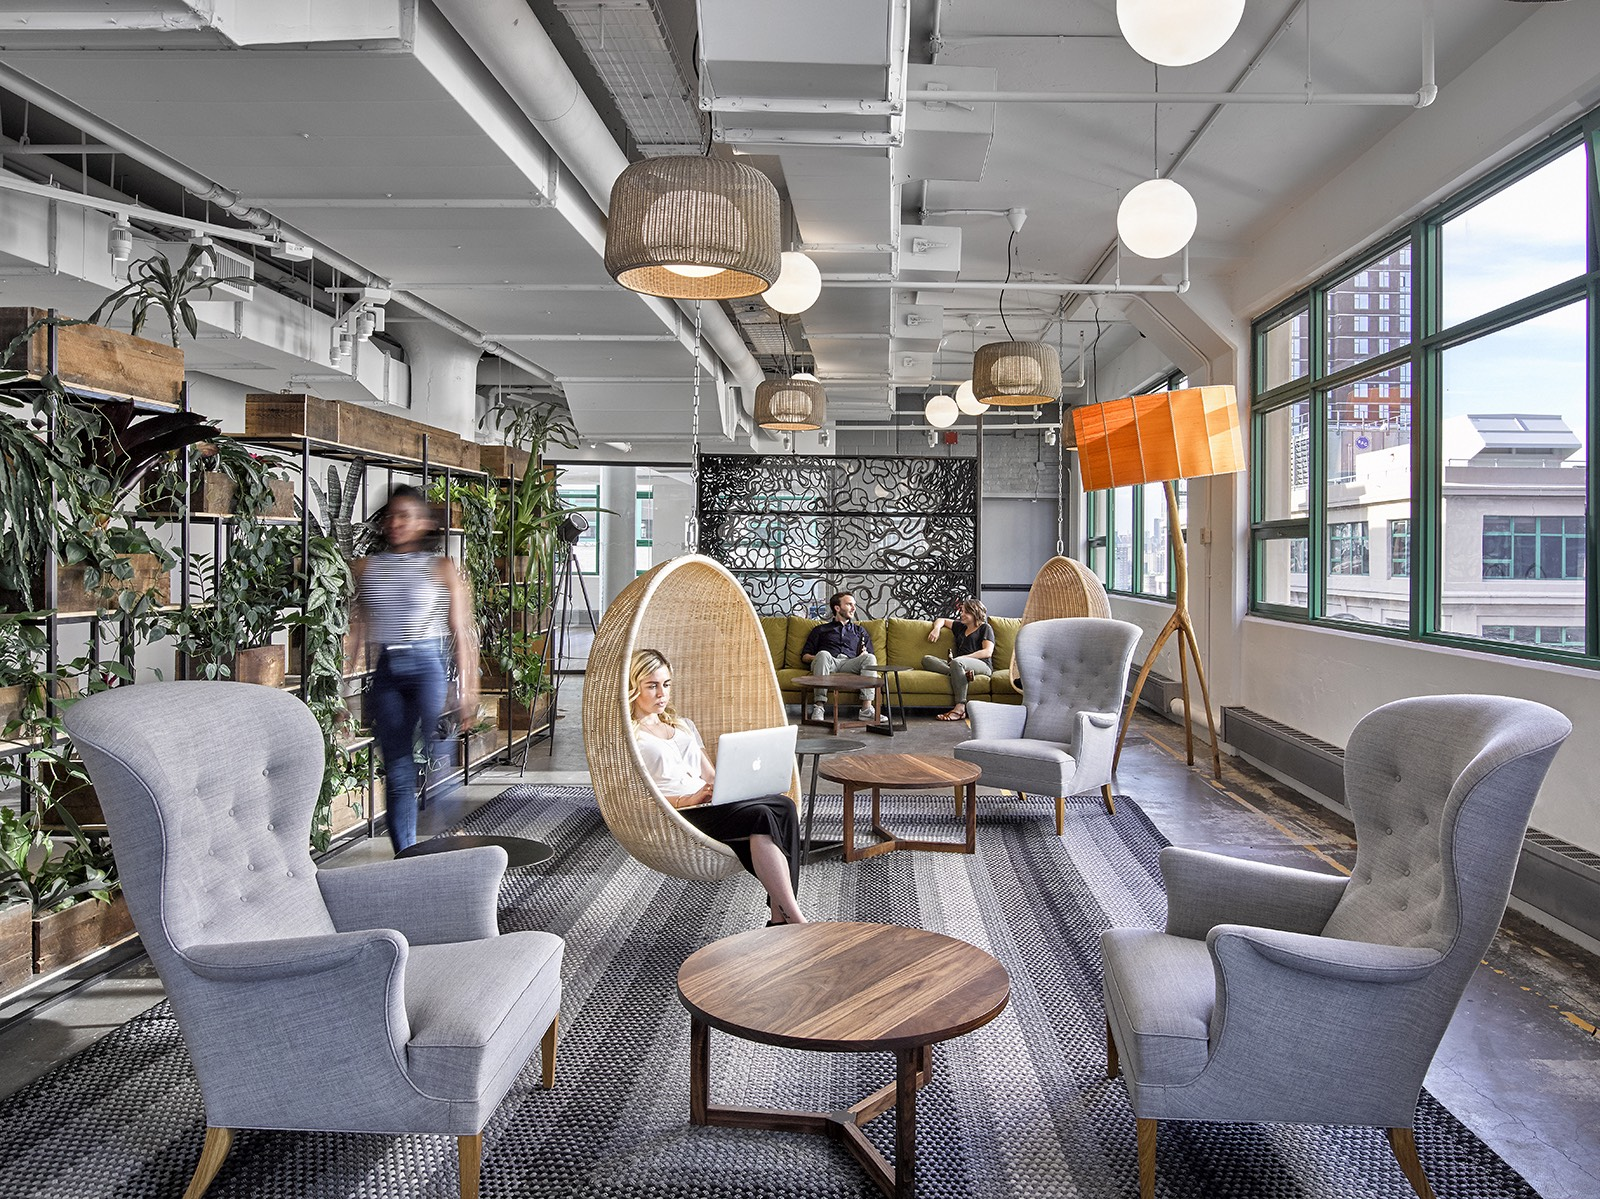 A Tour Of Etsy S Super Cool Brooklyn Headquarters